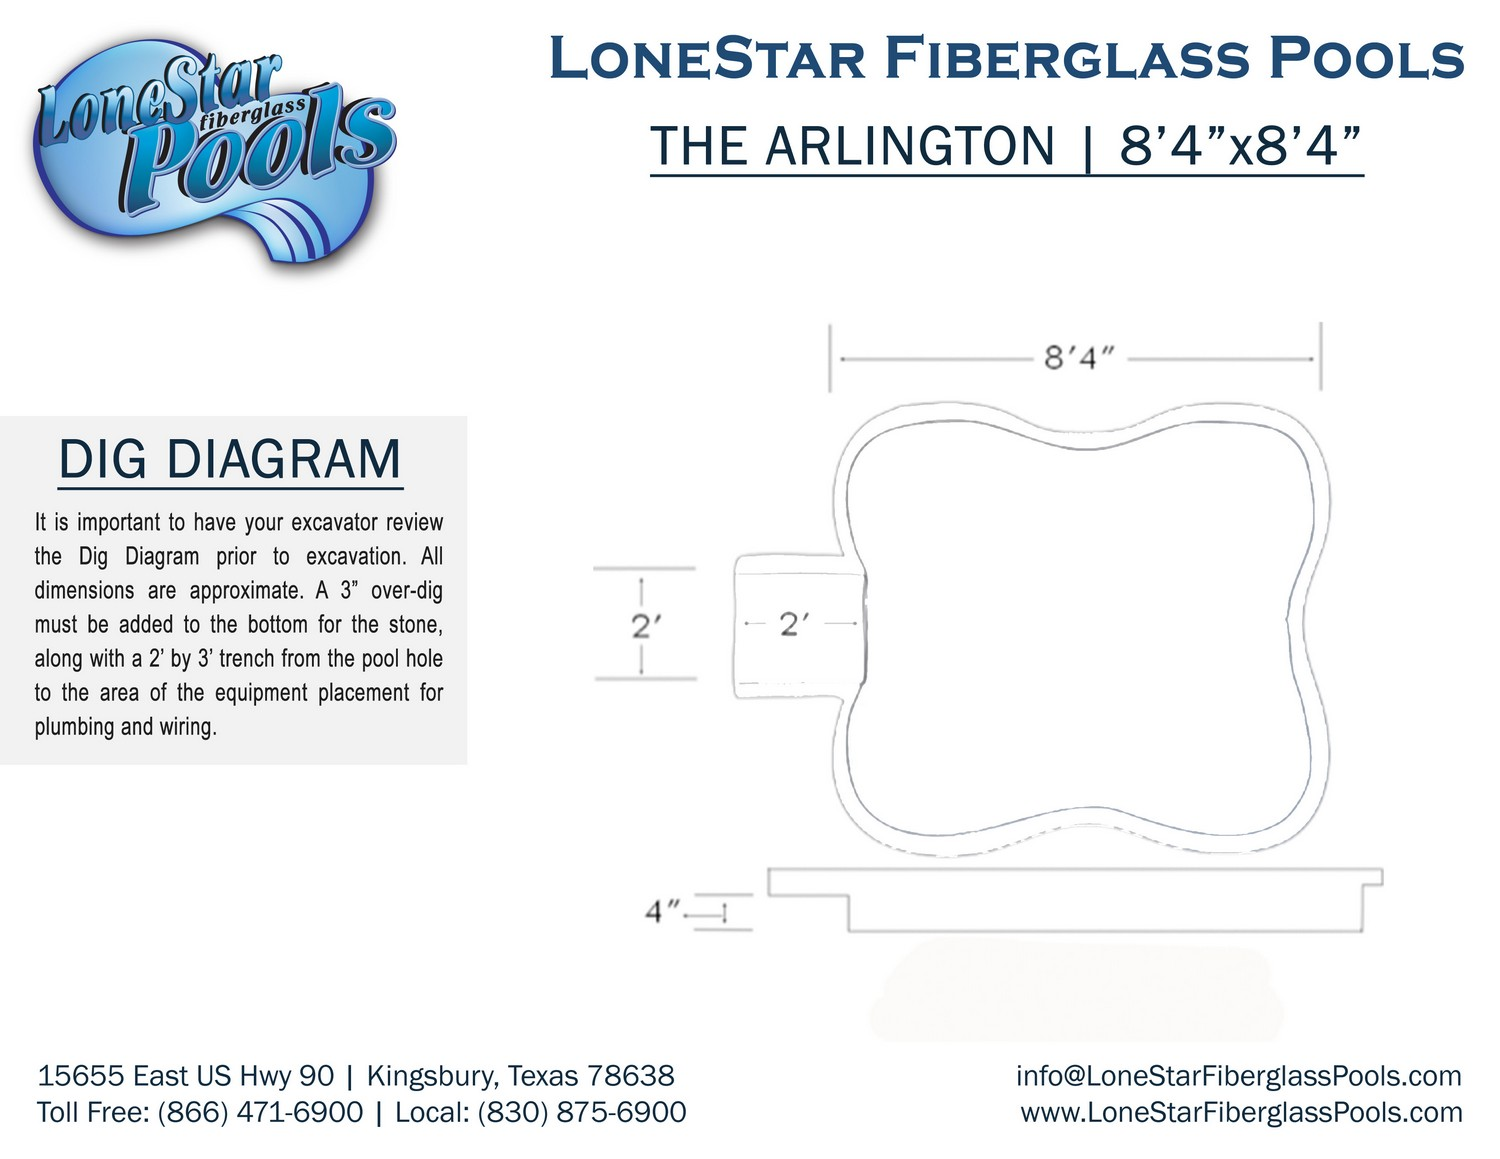 the arlington  atlantis inground fiberglass swimming pool dig diagram